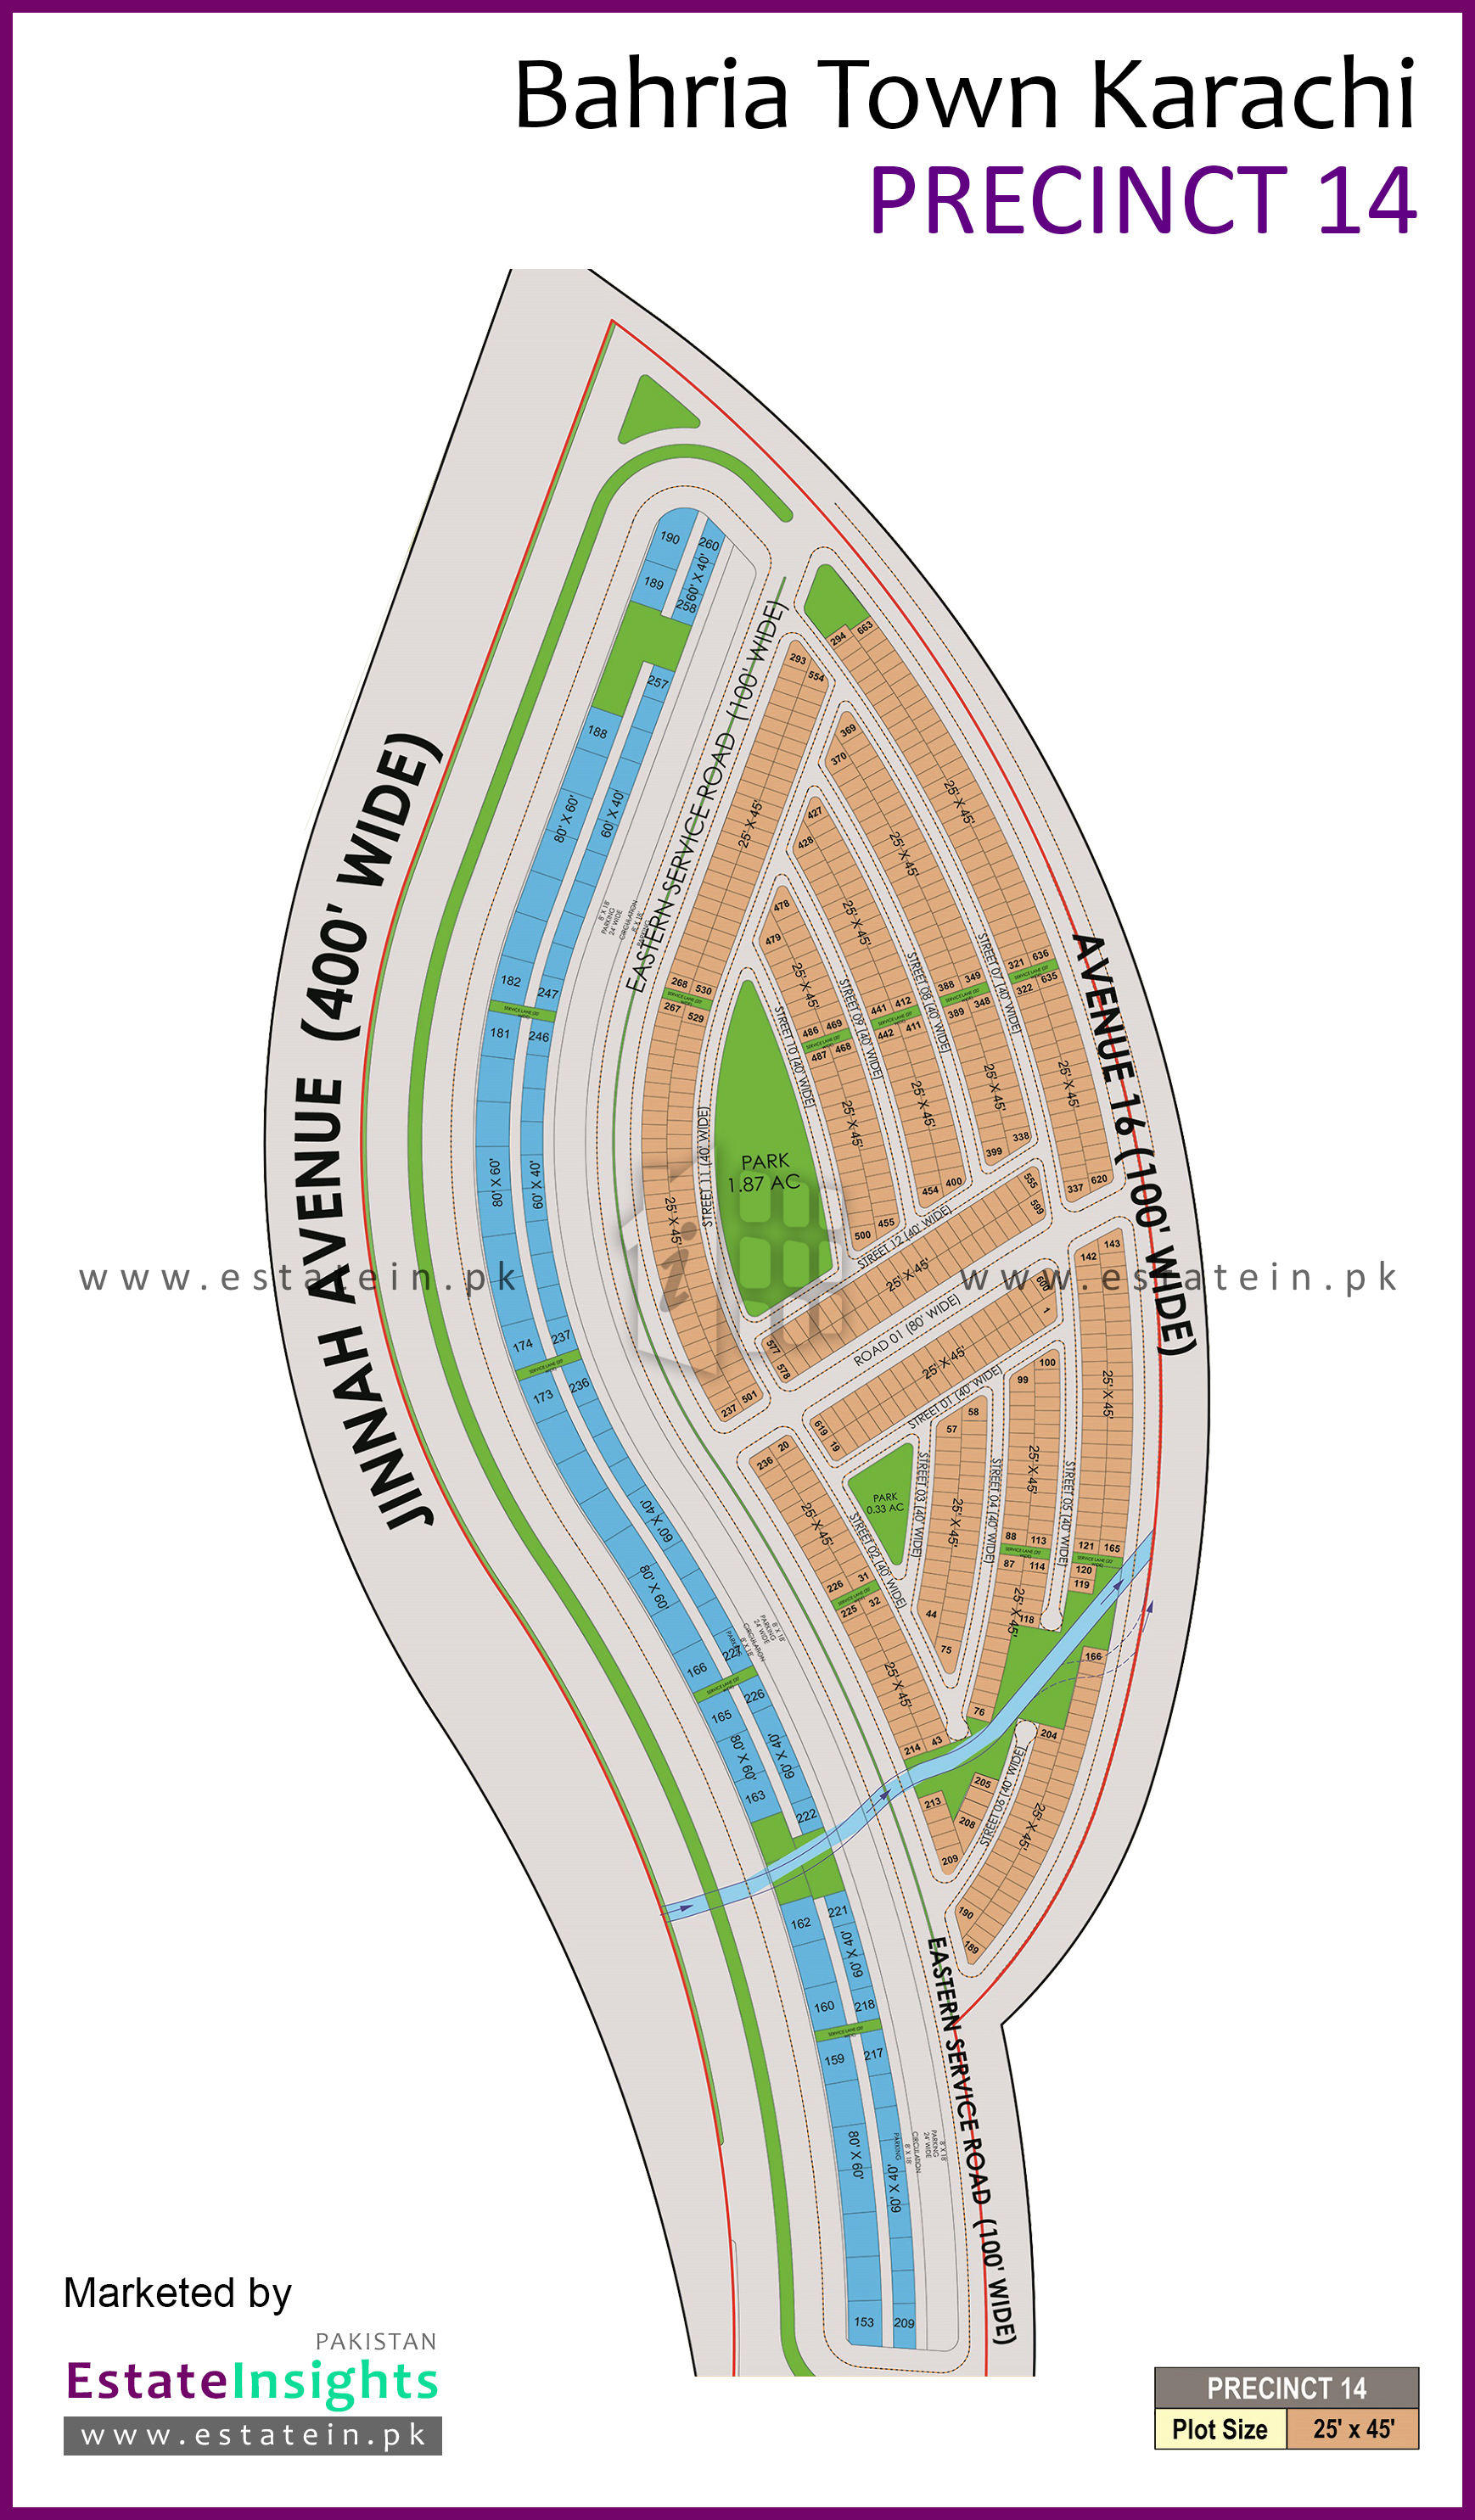 View High Resolution Project / Society Maps / Siteplan of Bahria